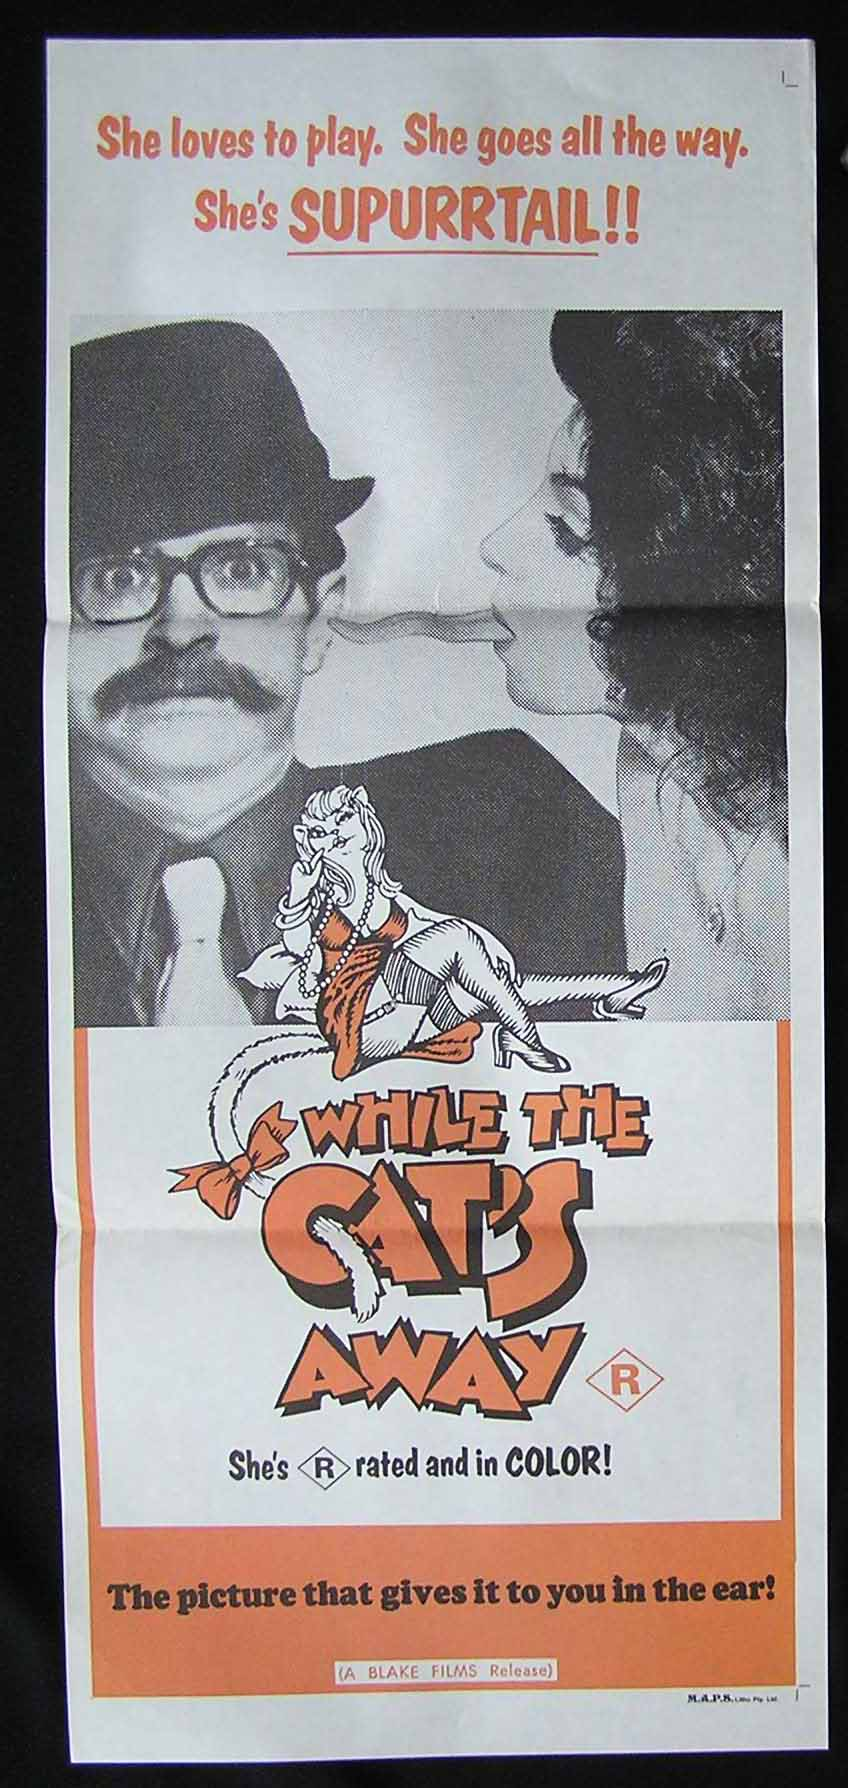 WHILE THE CAT'S AWAY '70s Sexploitation Movie Poster